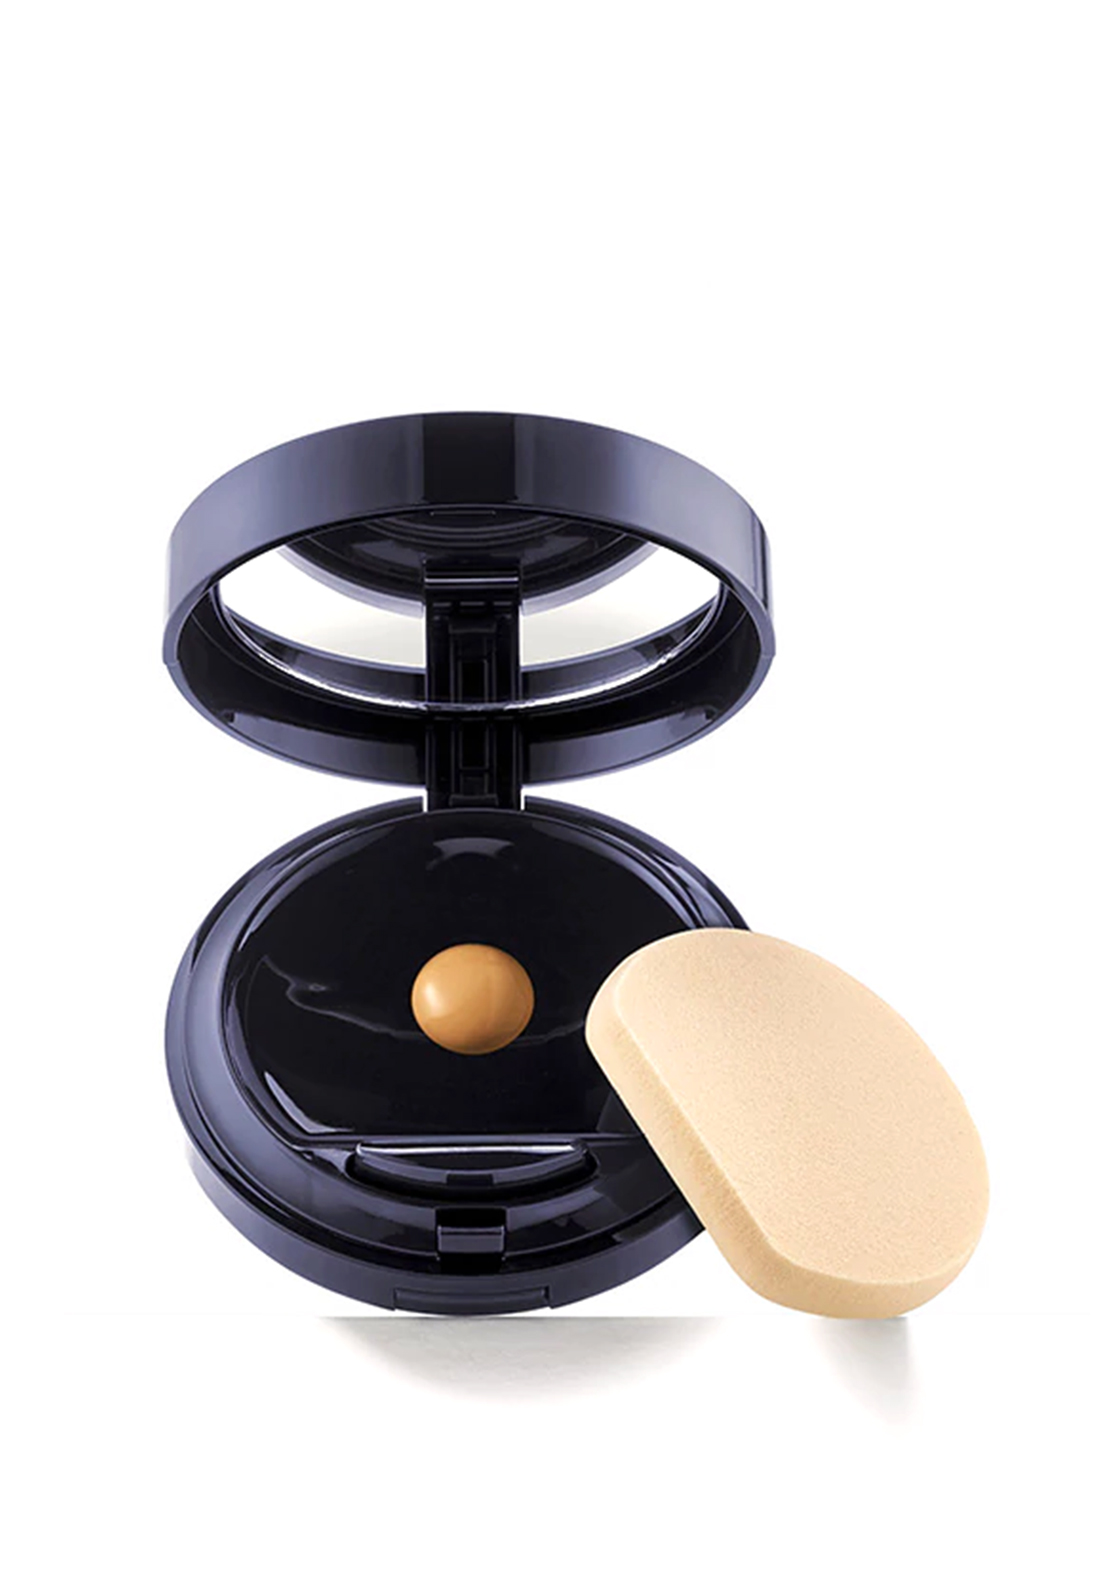 Estee Lauder Double Wear Make Up to Go Liquid Compact, Pebble